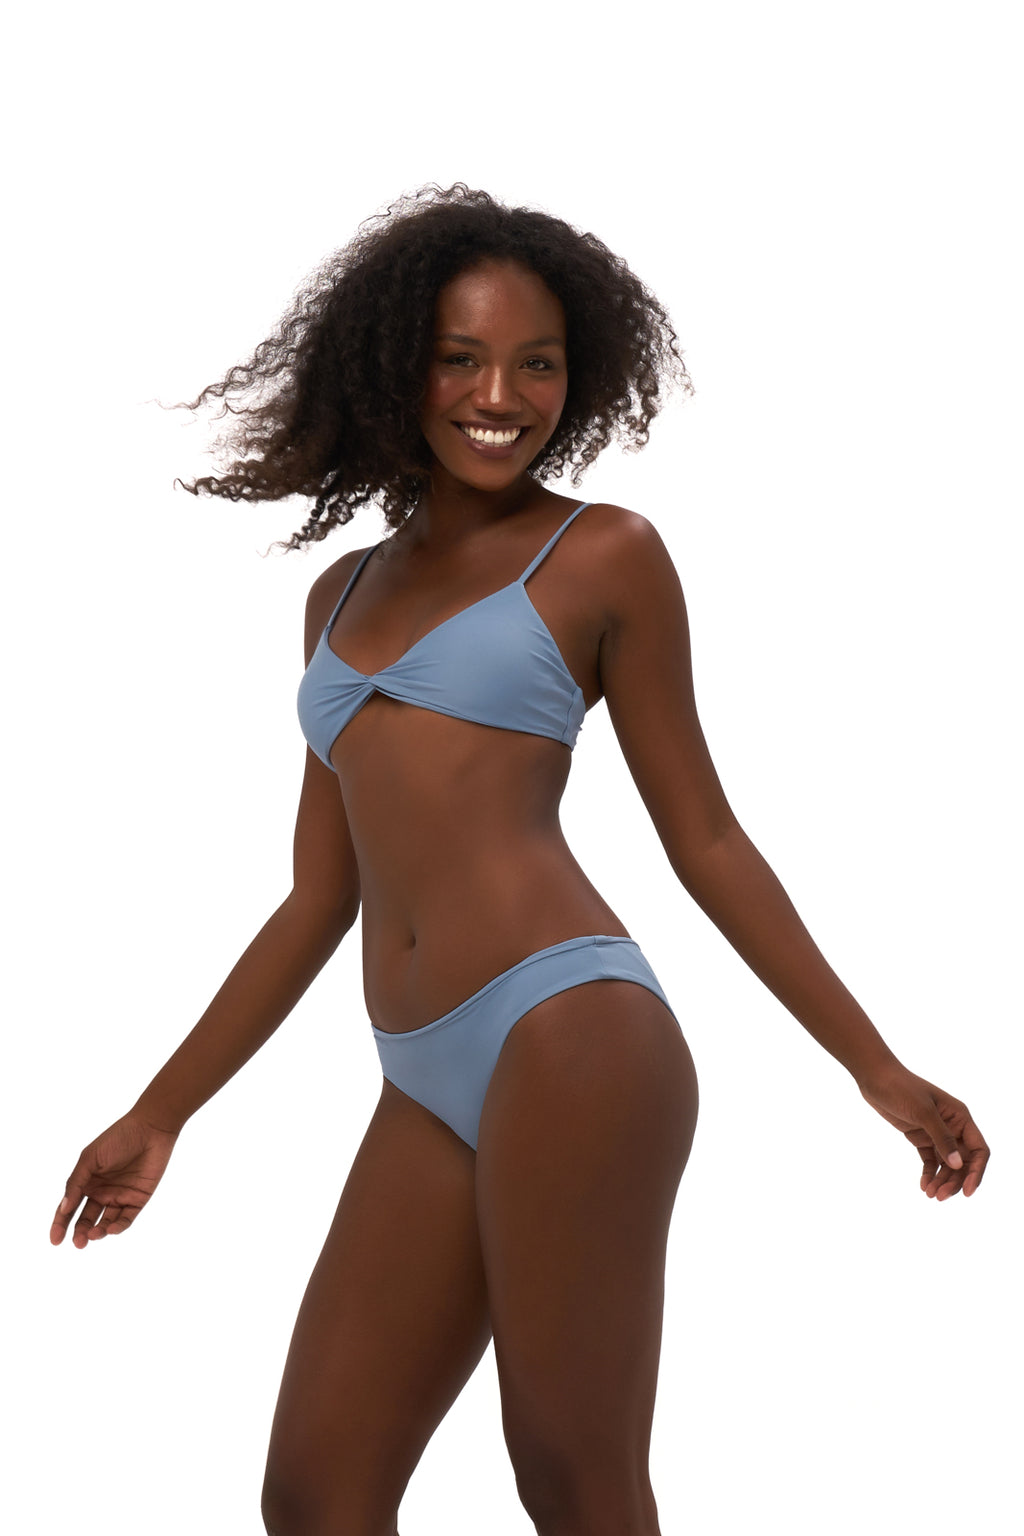 Storm Swimwear - Bora Bora - Twist front padded top in Sky Blue